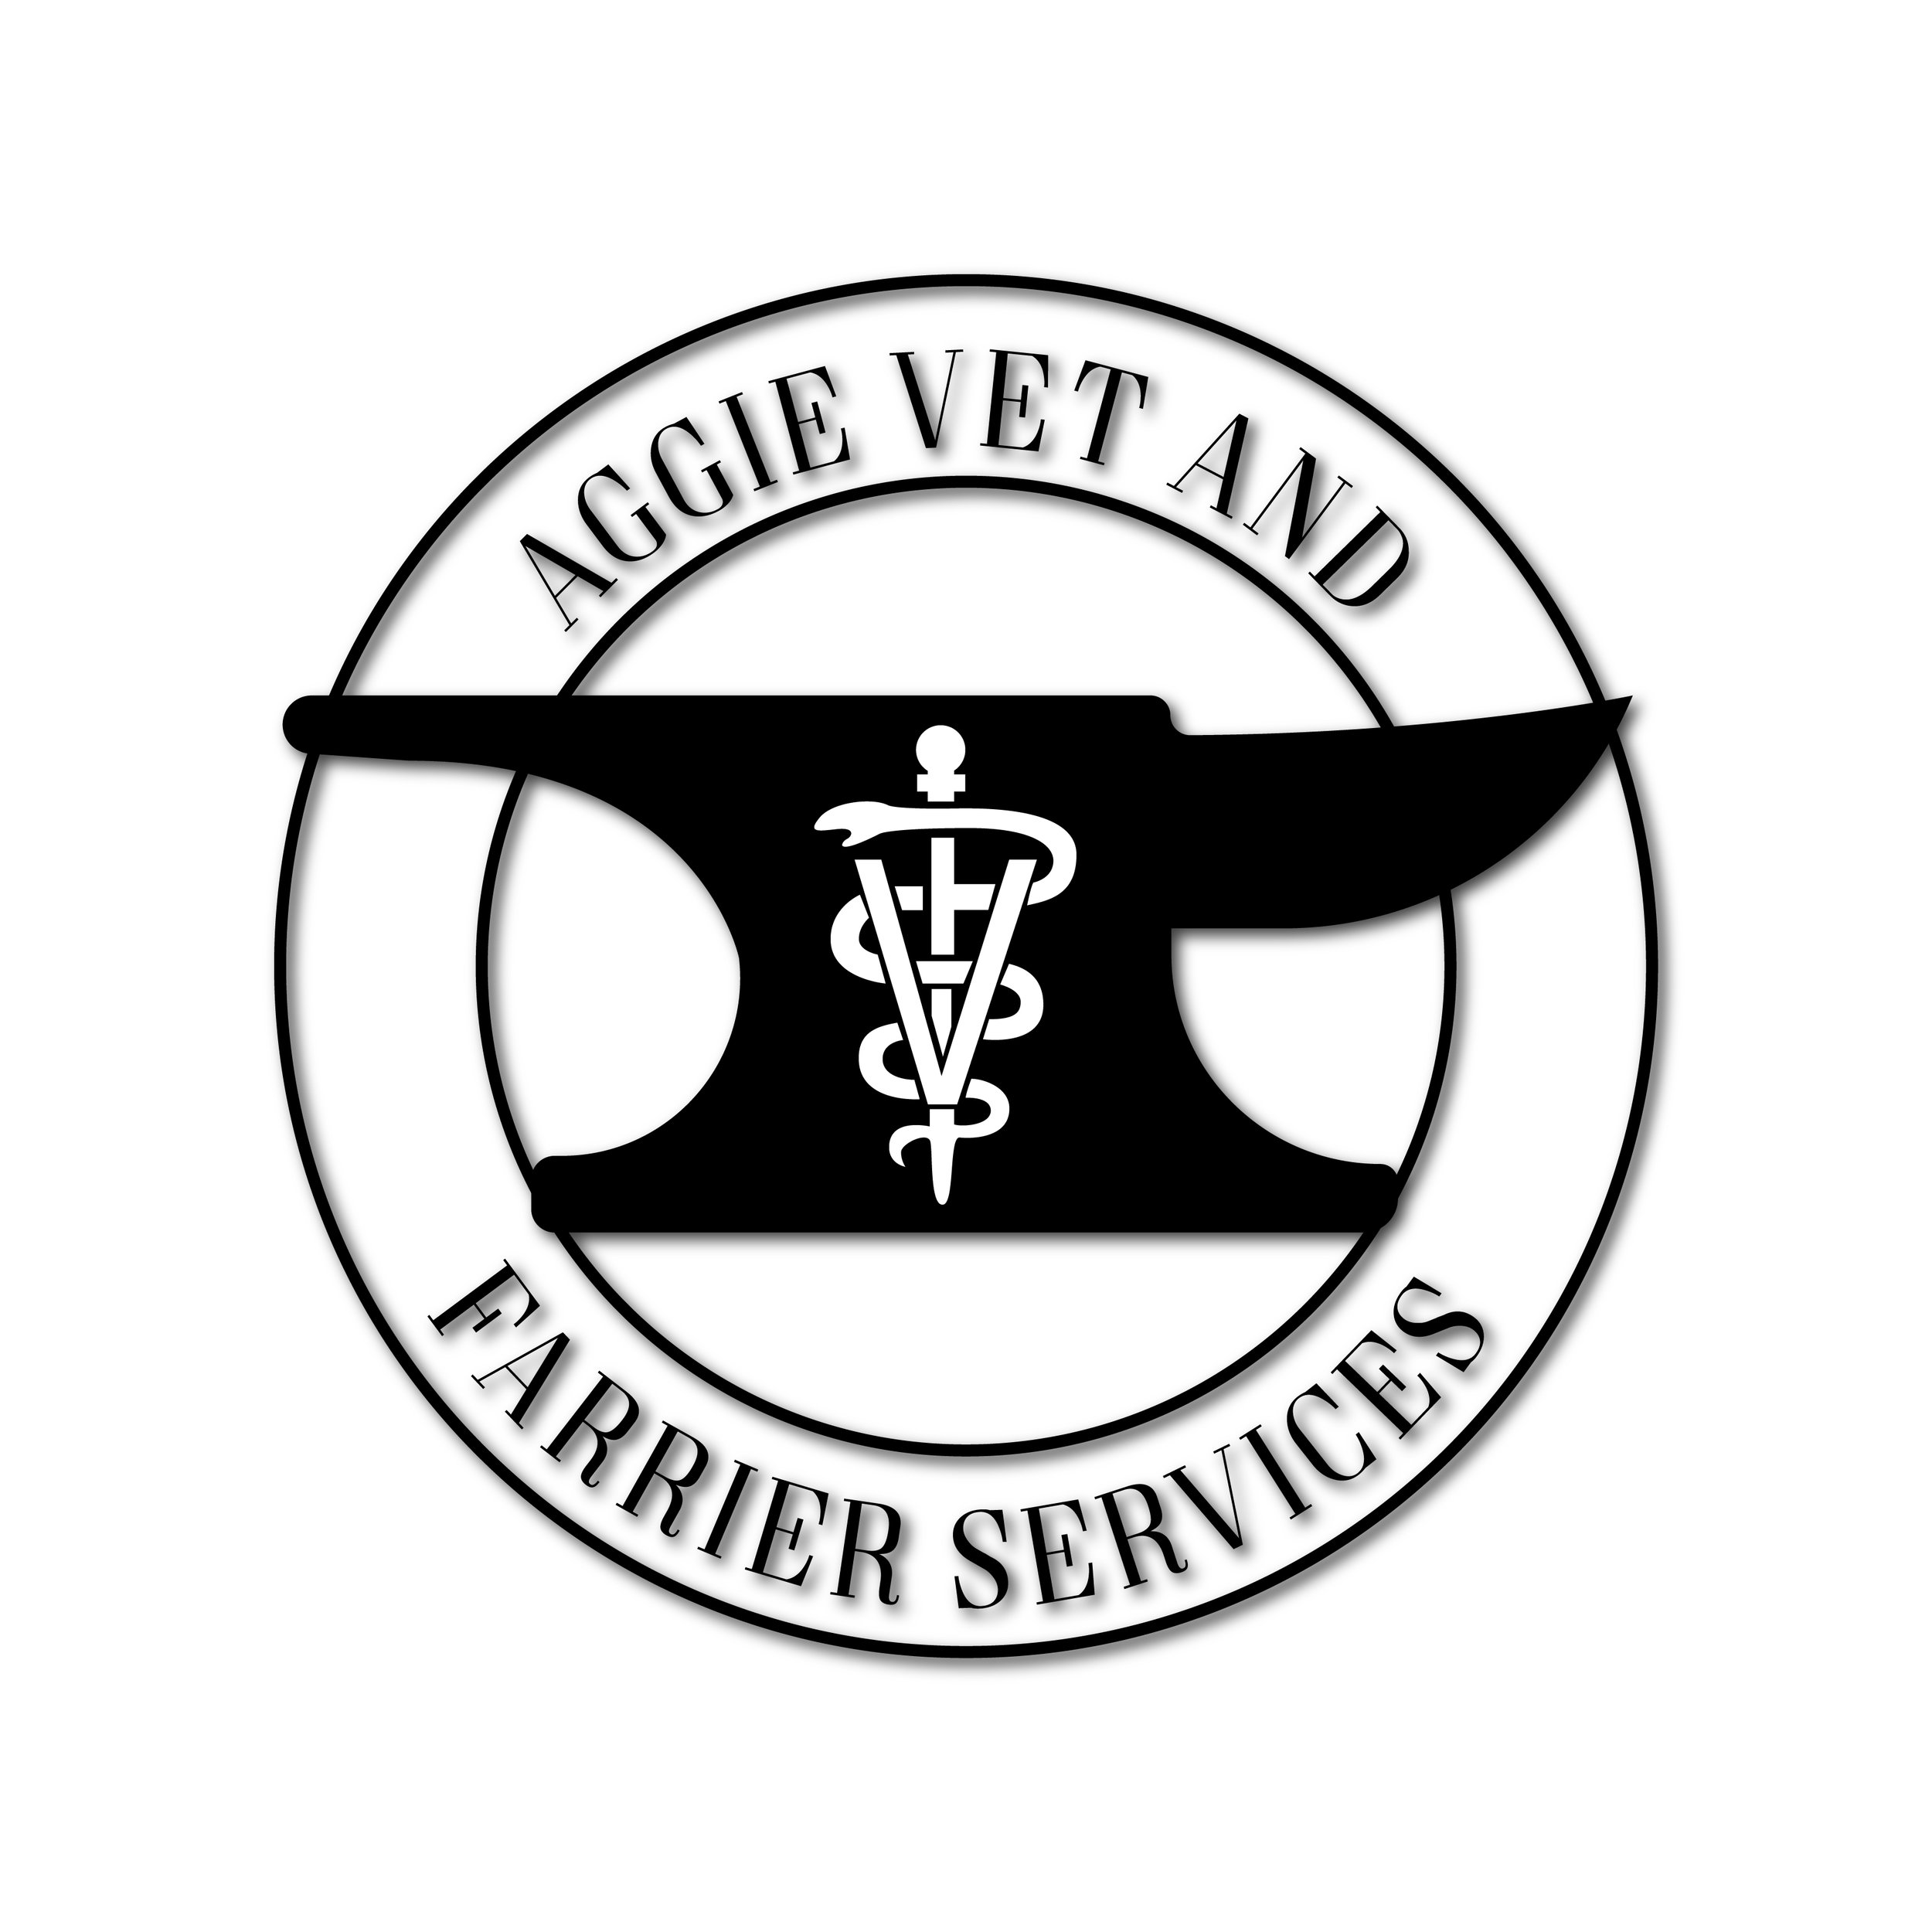 Aggie Vet and Farrier Services-03.jpg